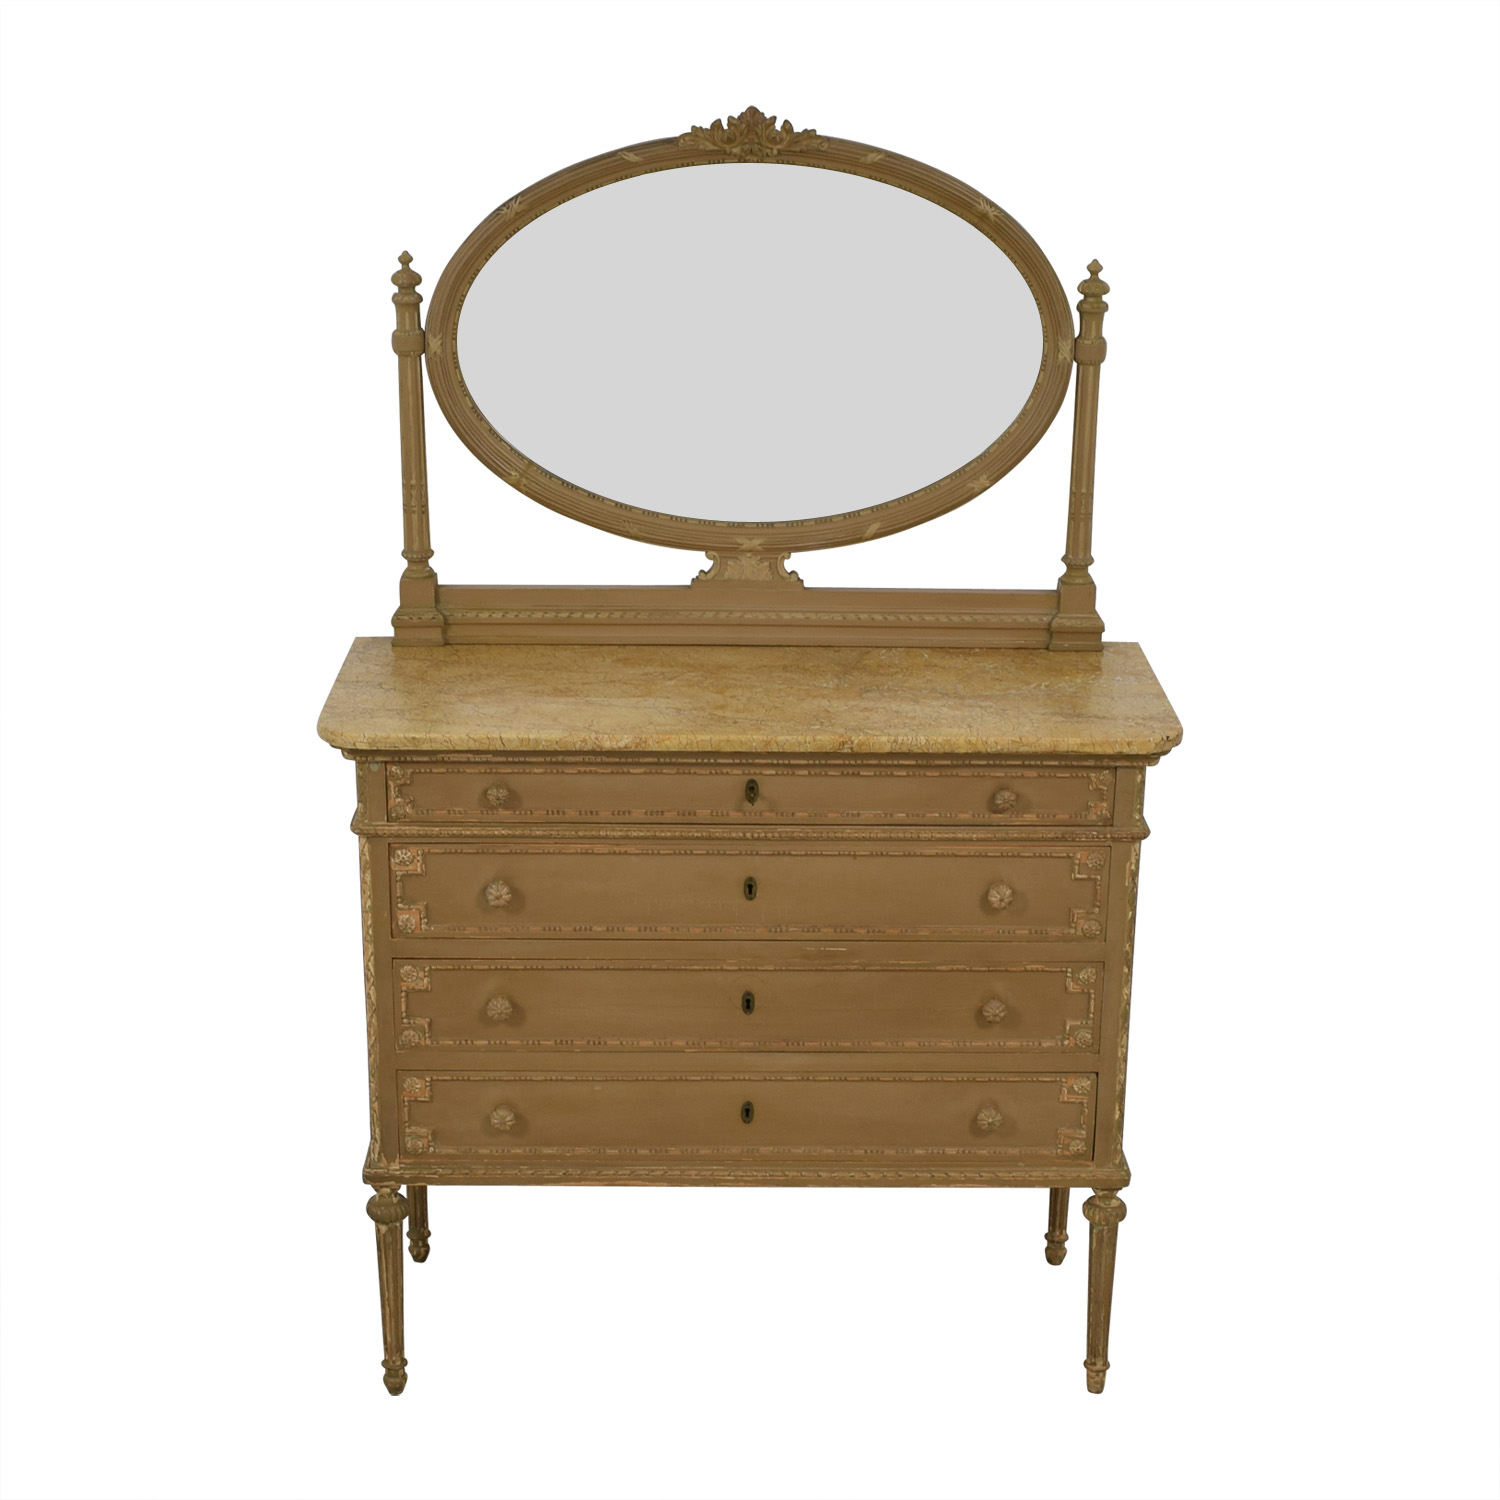 ABC Carpet & Home ABC Carpet & Home Antique Four-Drawer Dresser with Mirror nyc